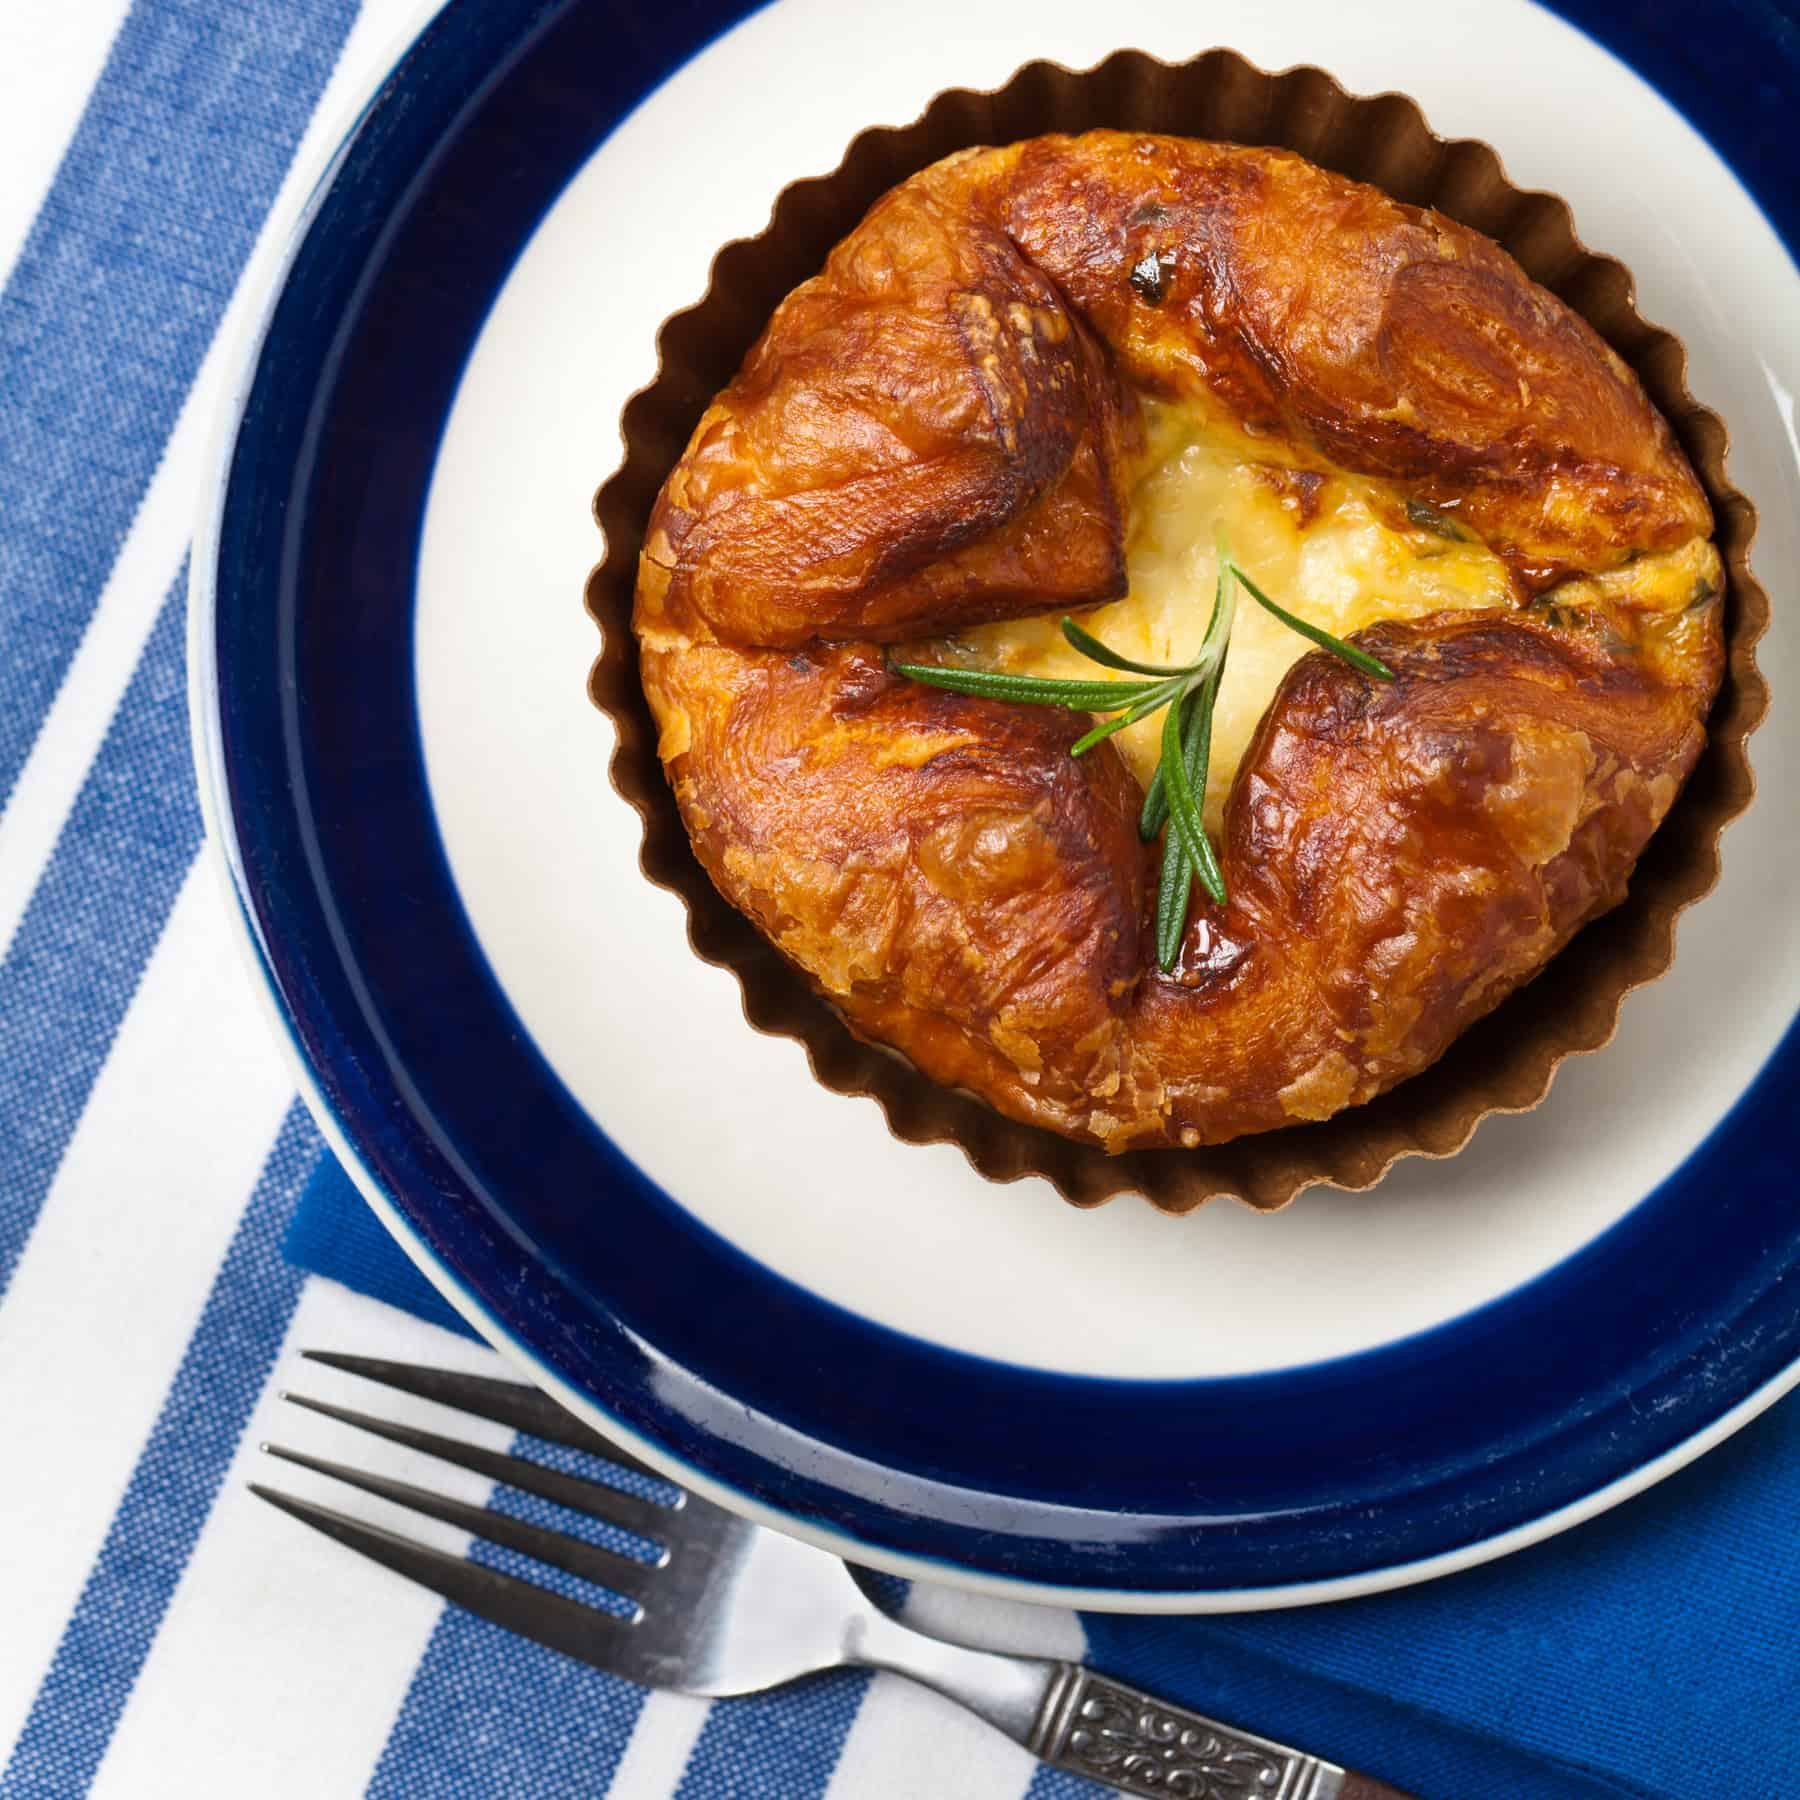 Souffle with baked eggs, French cuisine at its most elegant